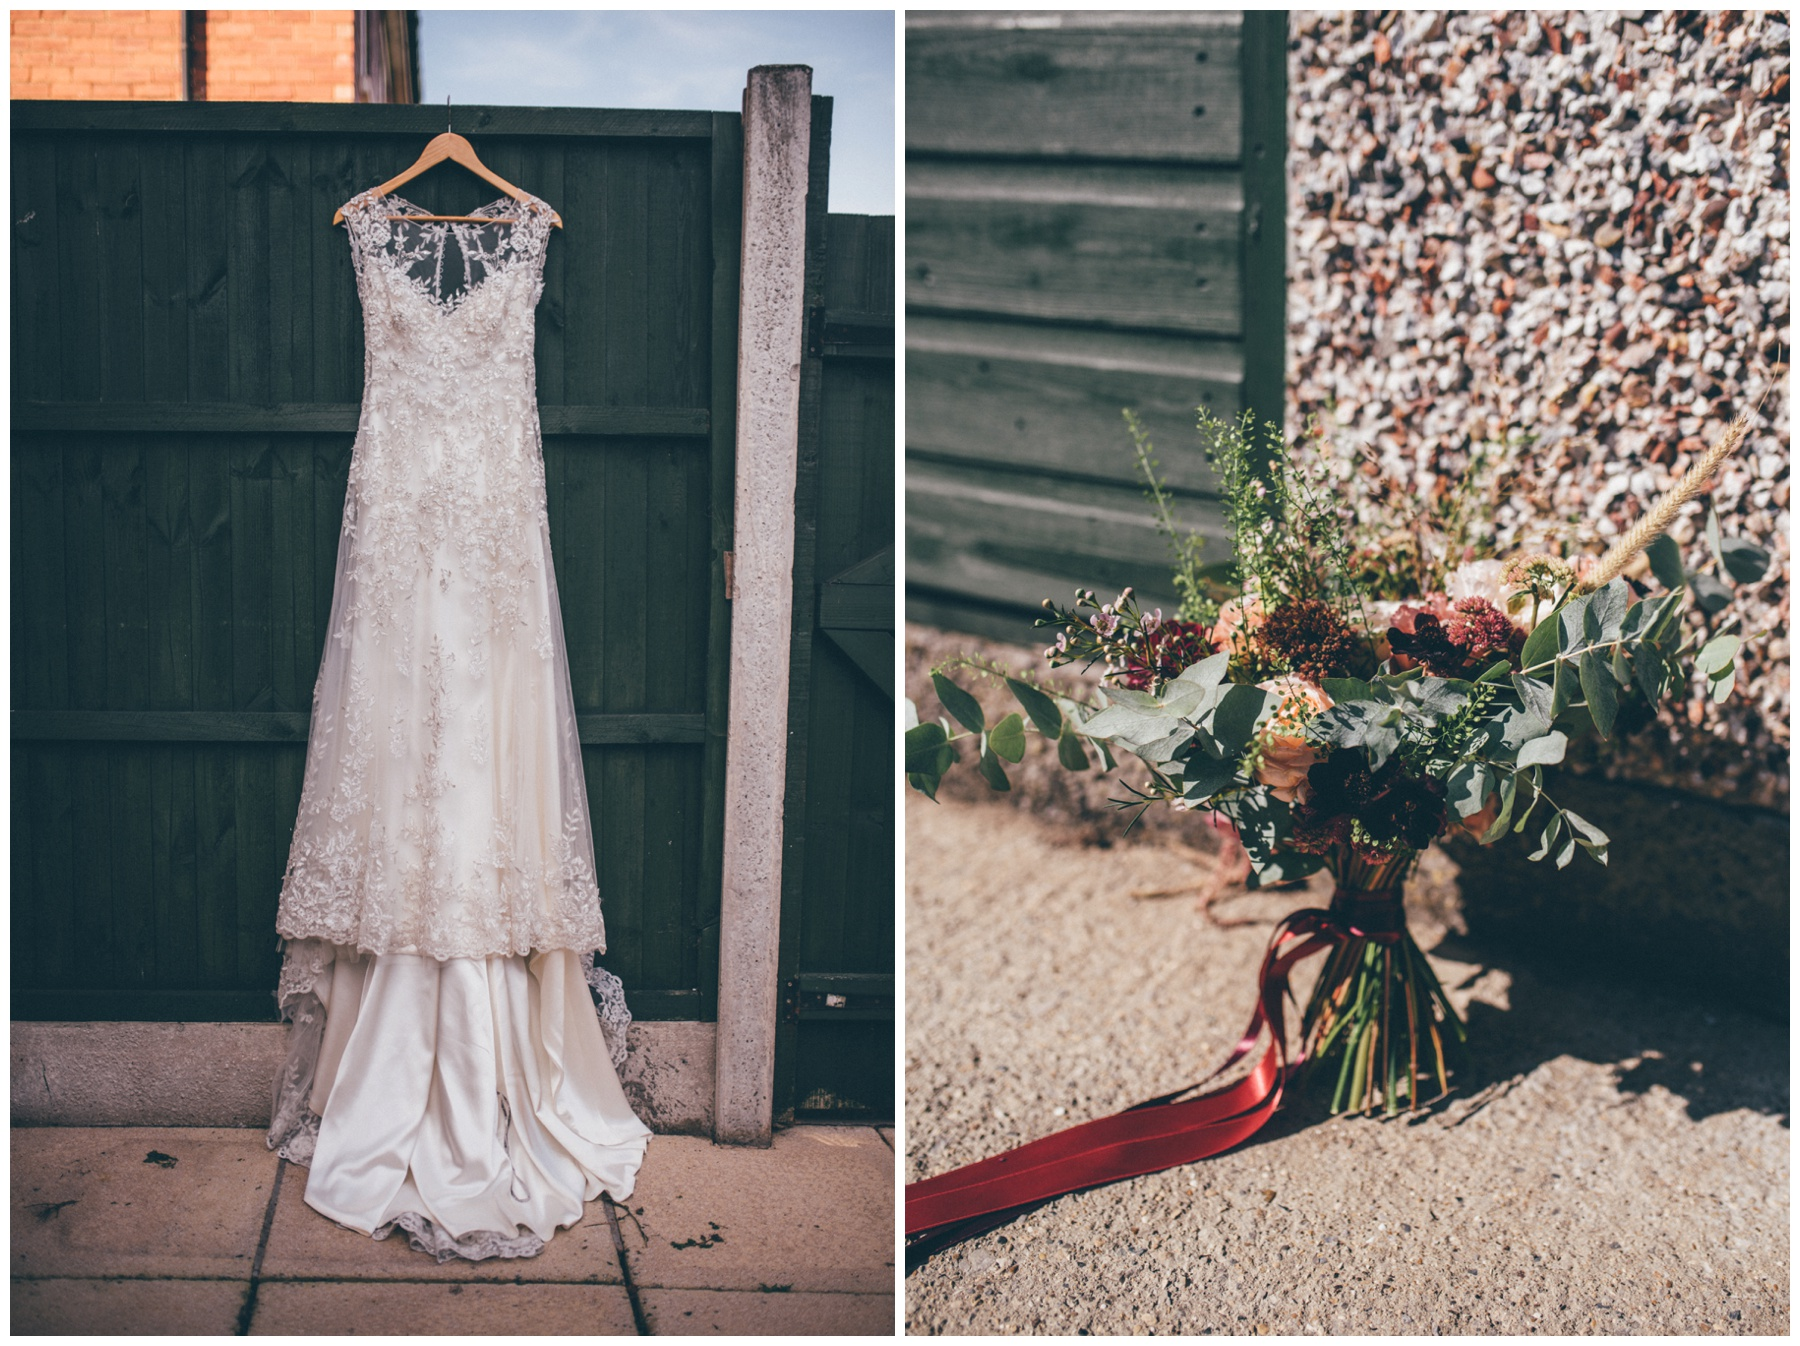 Stunning lace gown hung up and wild flowers in the garden for the Sheffield city centre wedding.